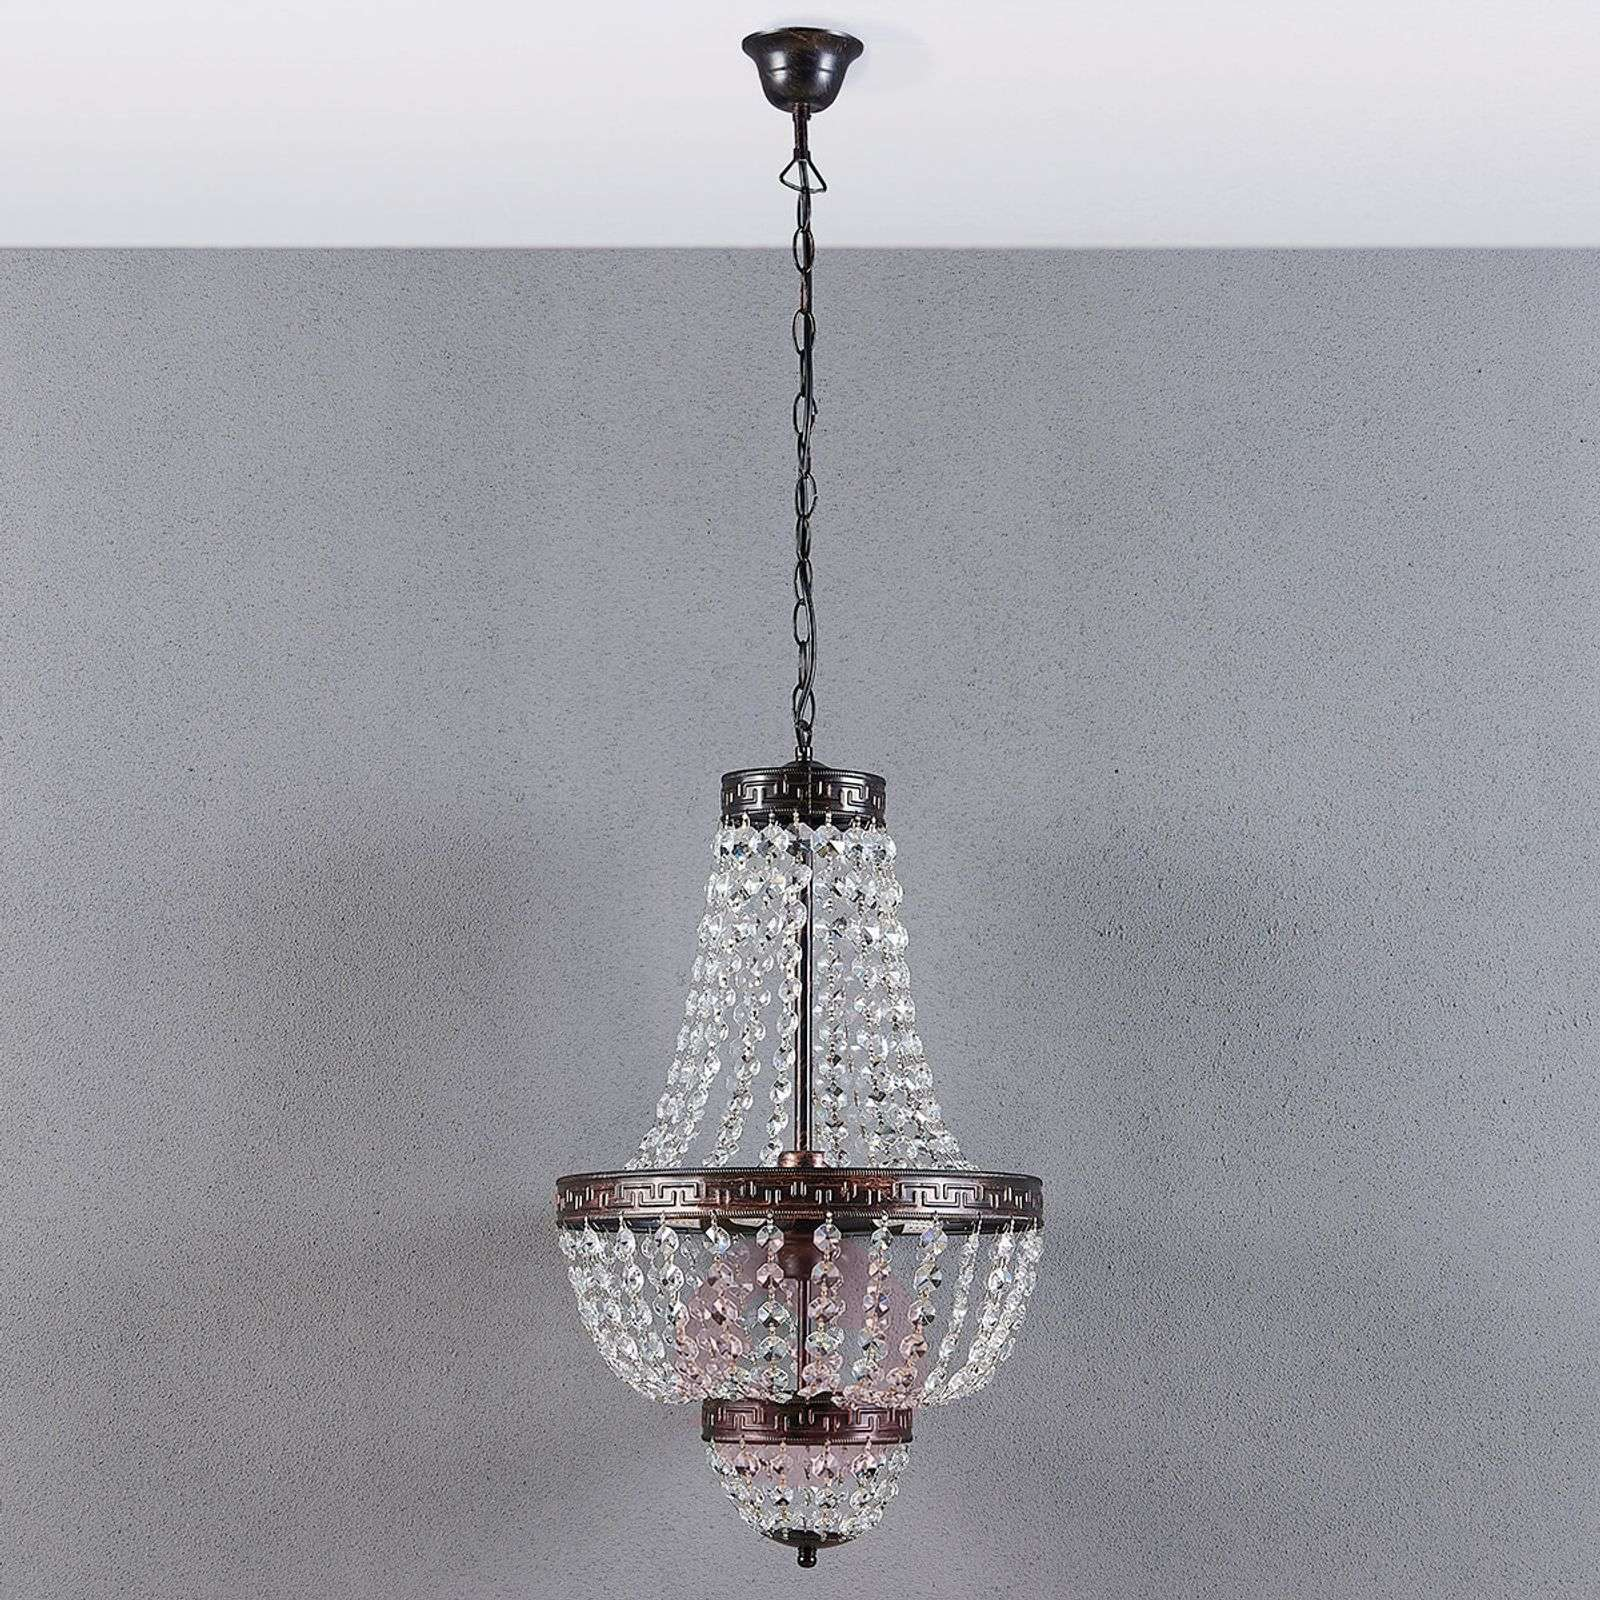 Belle suspension Jorbe avec du cristal-9621227-02